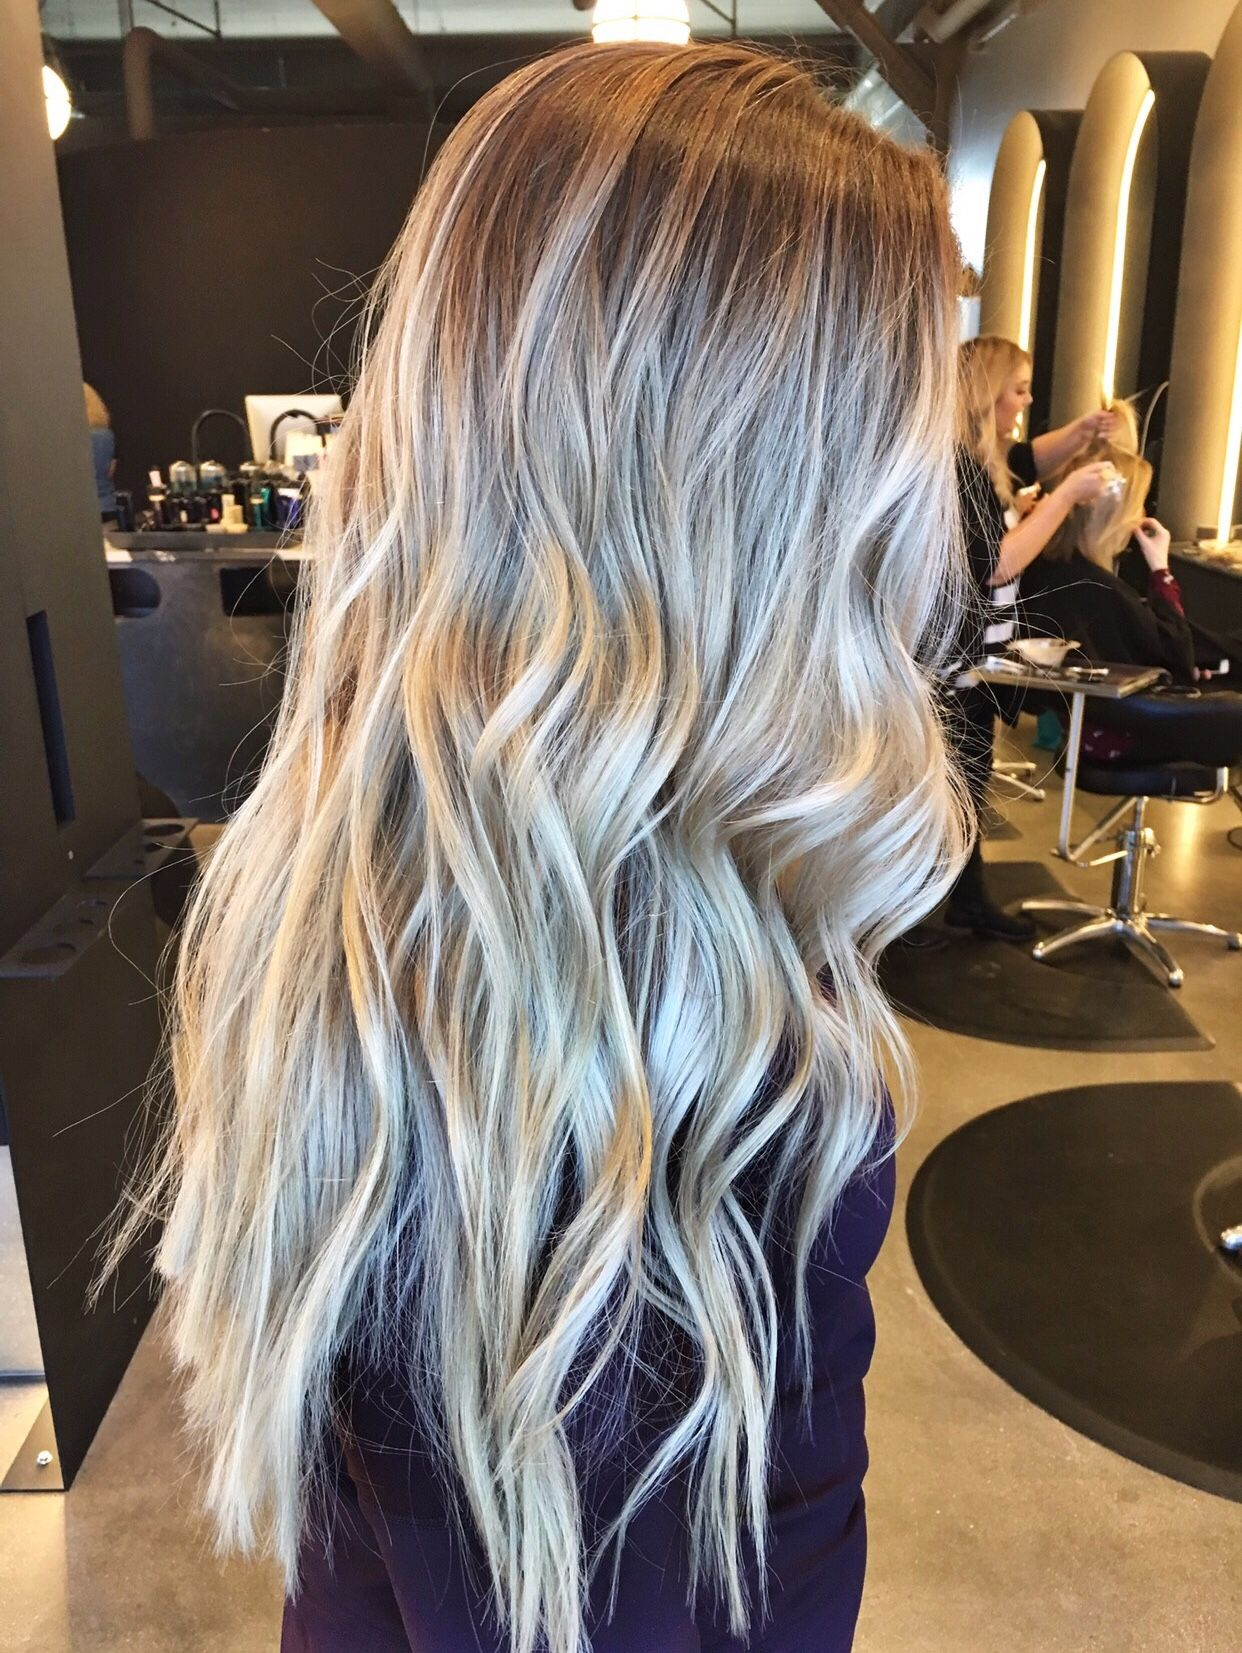 Have You Achieved Your Desired Blonde If Not Schedule N W And Let Our Talented Team Create A Designer Blonde For You Best Hair Salon Cool Hairstyles Hair